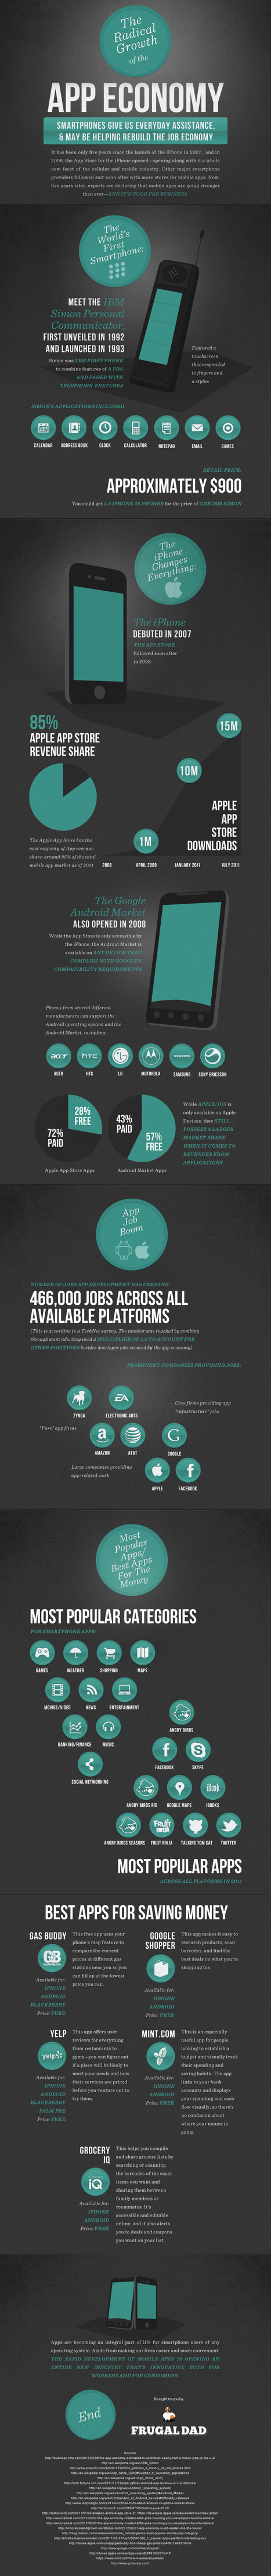 The Radical Growth of the App Economy #Infographic | The Social Web | Scoop.it